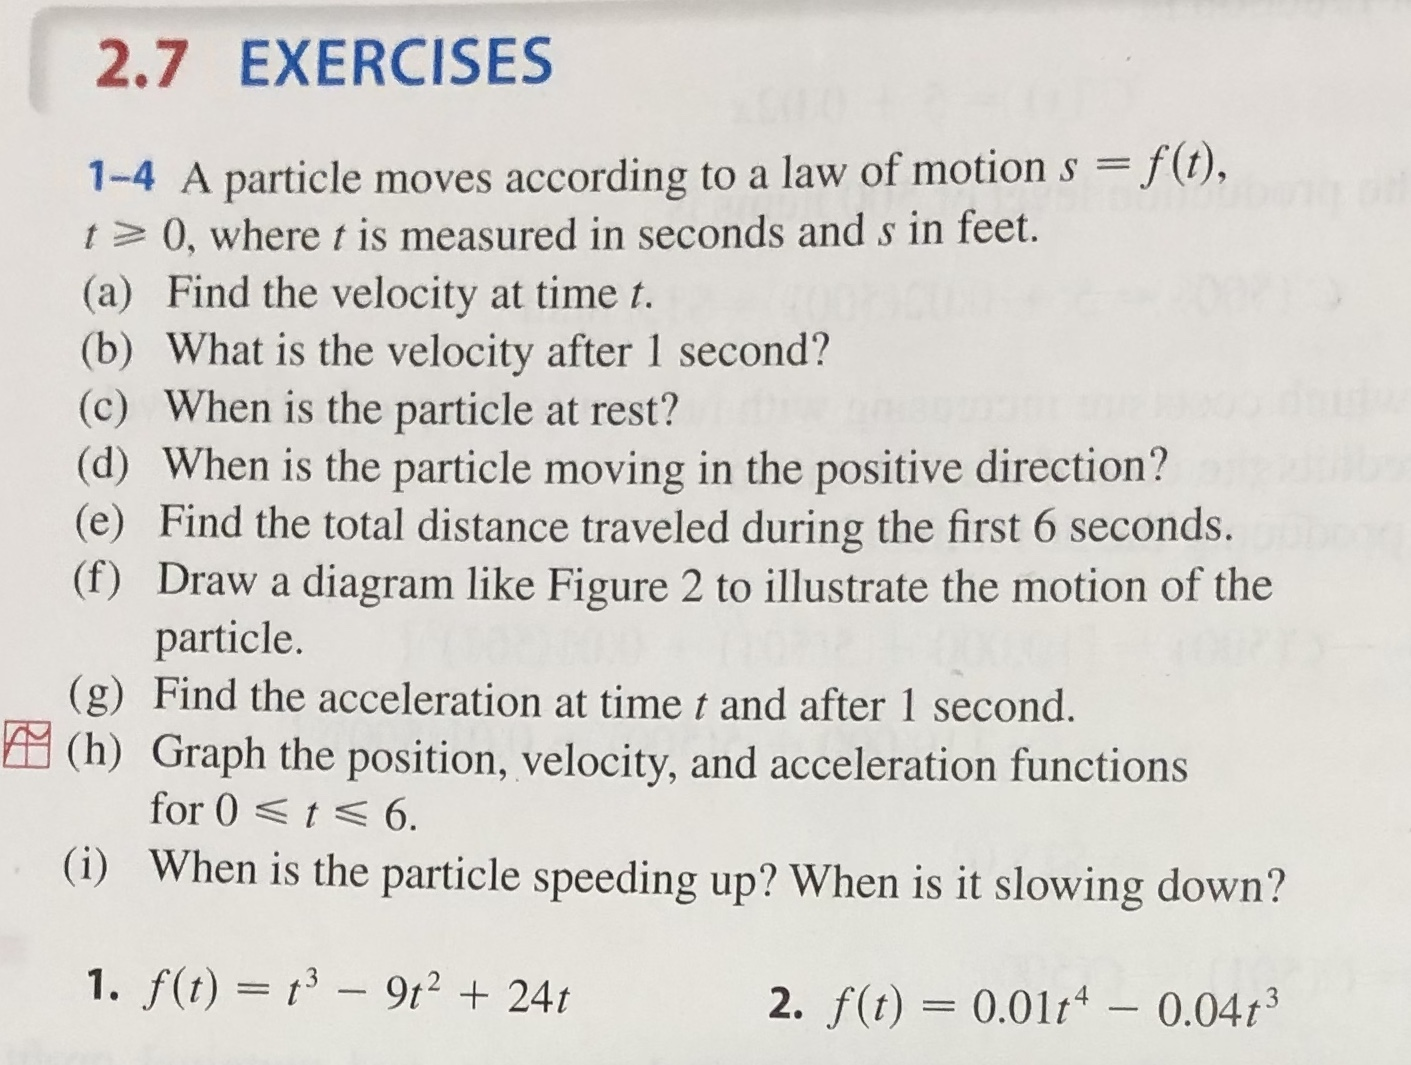 2.7 EXERCISES 1-4 A particle moves according to a law of motion s f(t), t 0, where t is measured in seconds ands in feet. (a) Find the velocity at time t. (b) What is the velocity after 1 second? (c) When is the particle at rest? (d) When is the particle moving in the positive direction? (e) Find the total distance traveled during the first 6 seconds. (f) Draw a diagram like Figure 2 to illustrate the motion of the particle. (g) Find the acceleration at time t and after 1 second. (h) Graph the position, velocity, and acceleration functions for 0t 6. (i) When is the particle speeding up? When is it slowing down? 1. f(t) t3-9t224t 2. f(t) 0.01t - 0.04t3